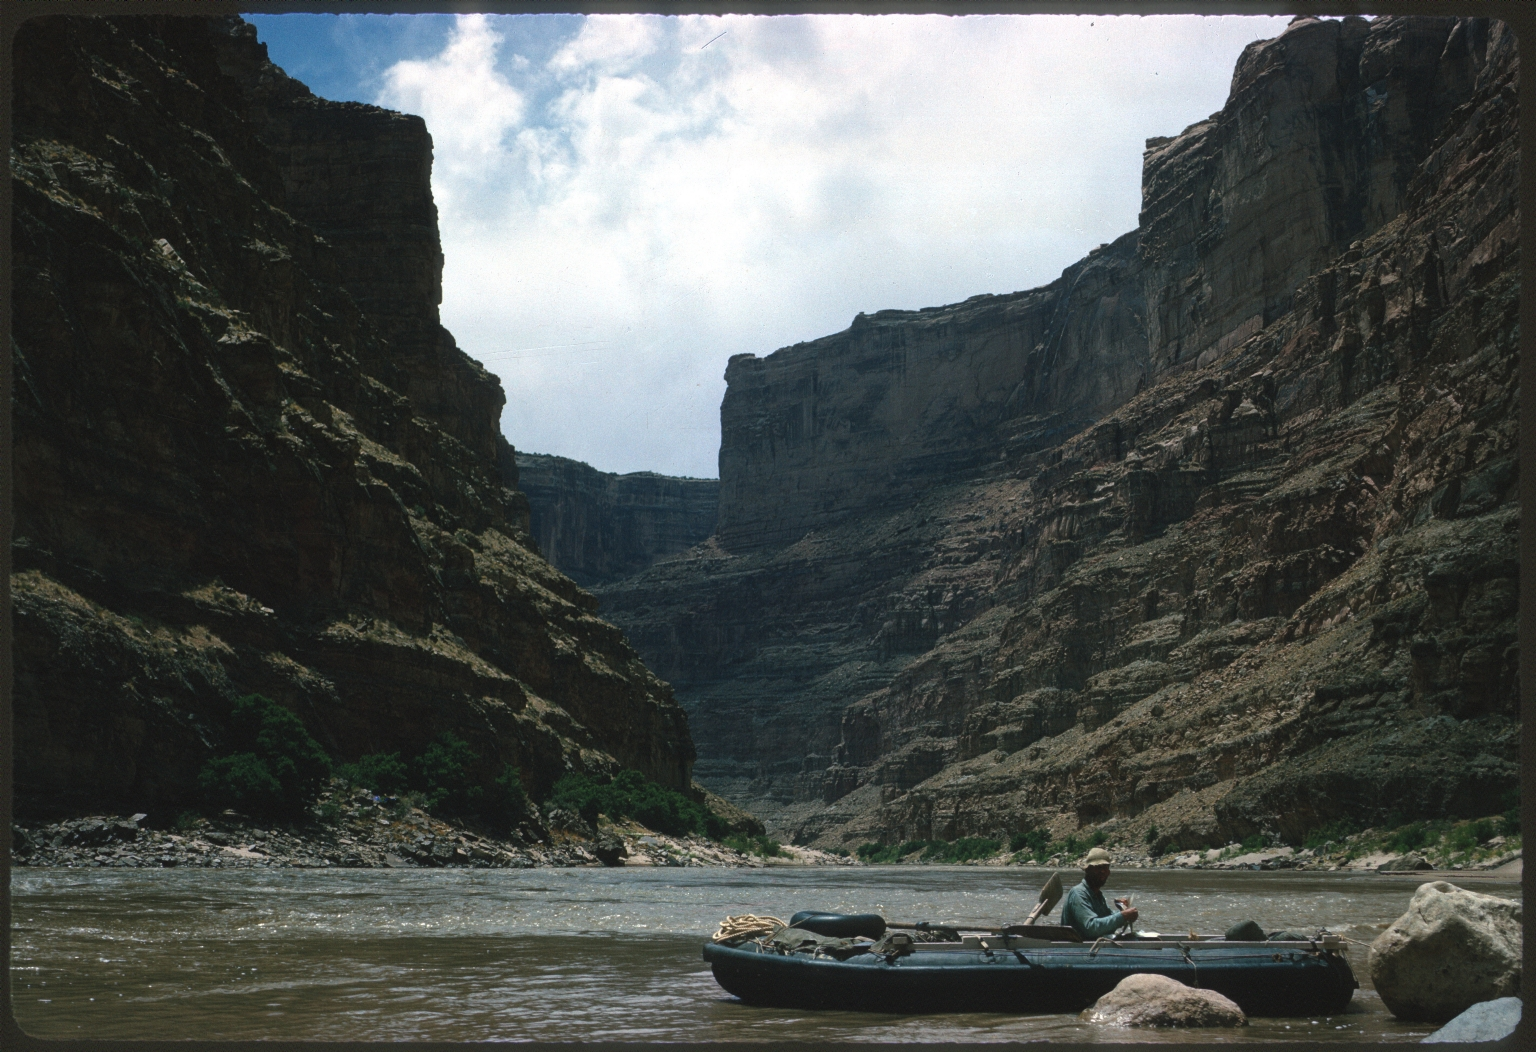 Cataract Canyon